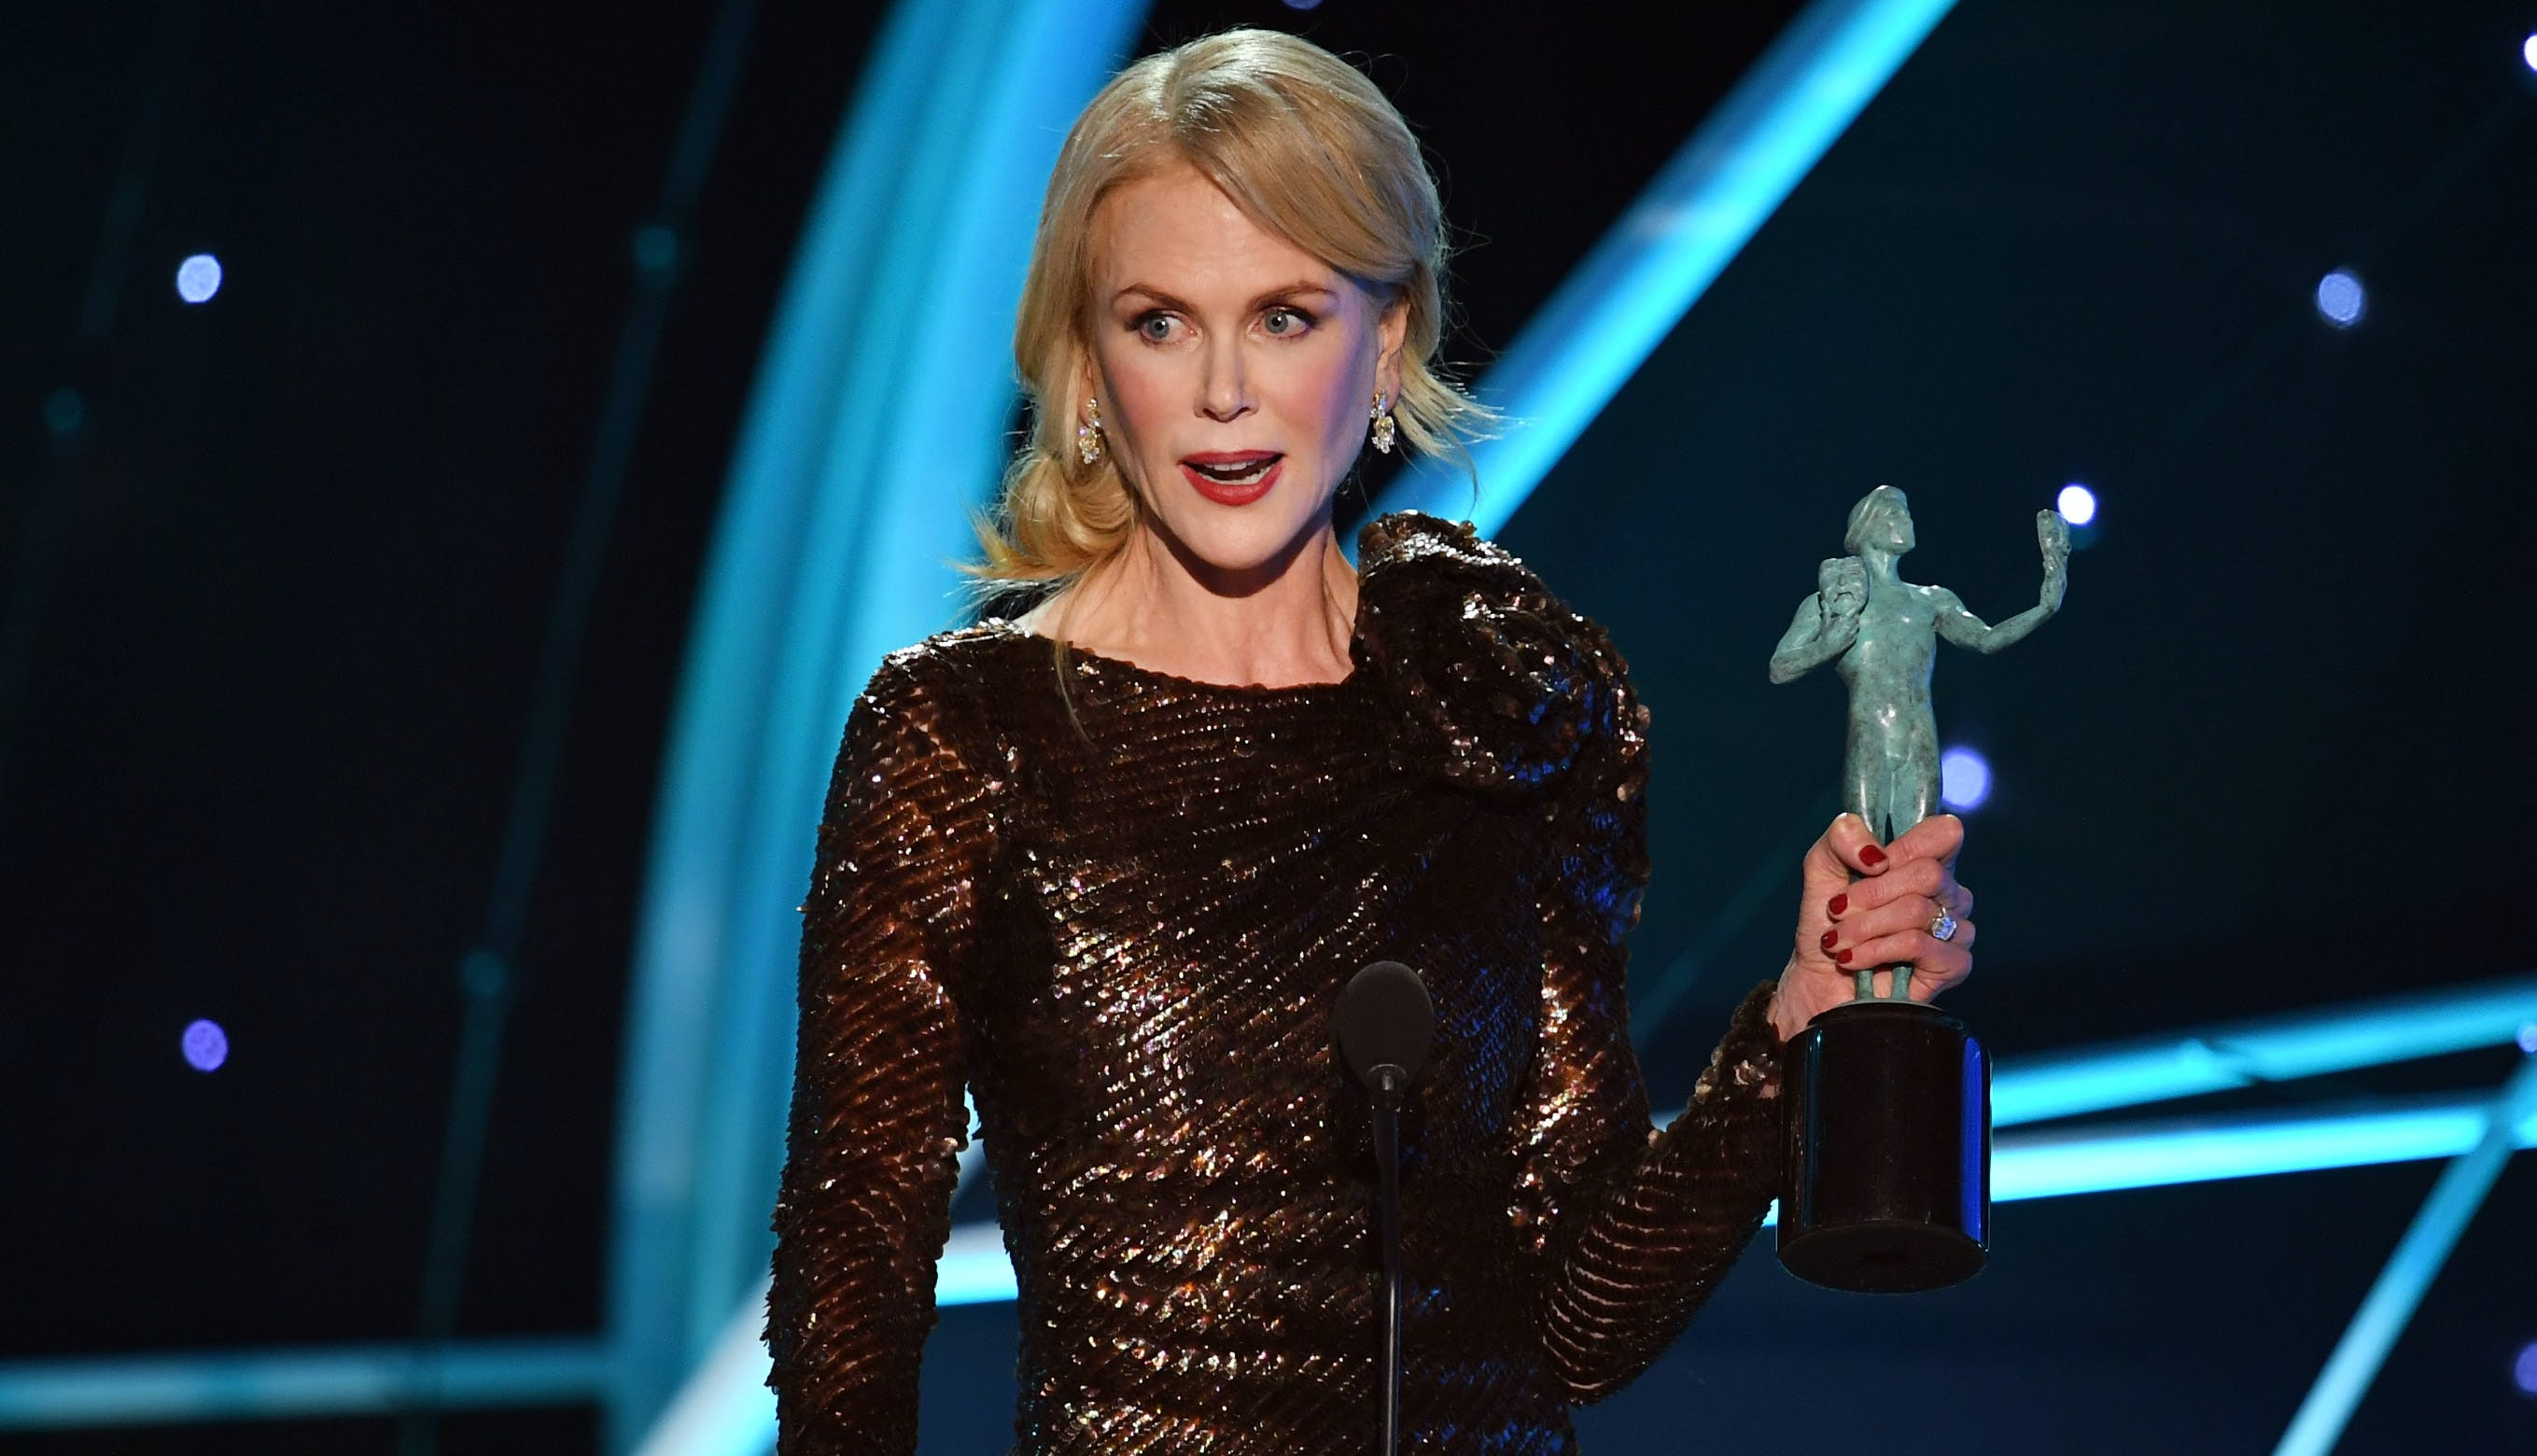 Best SAG Awards moments Nicole Kidman